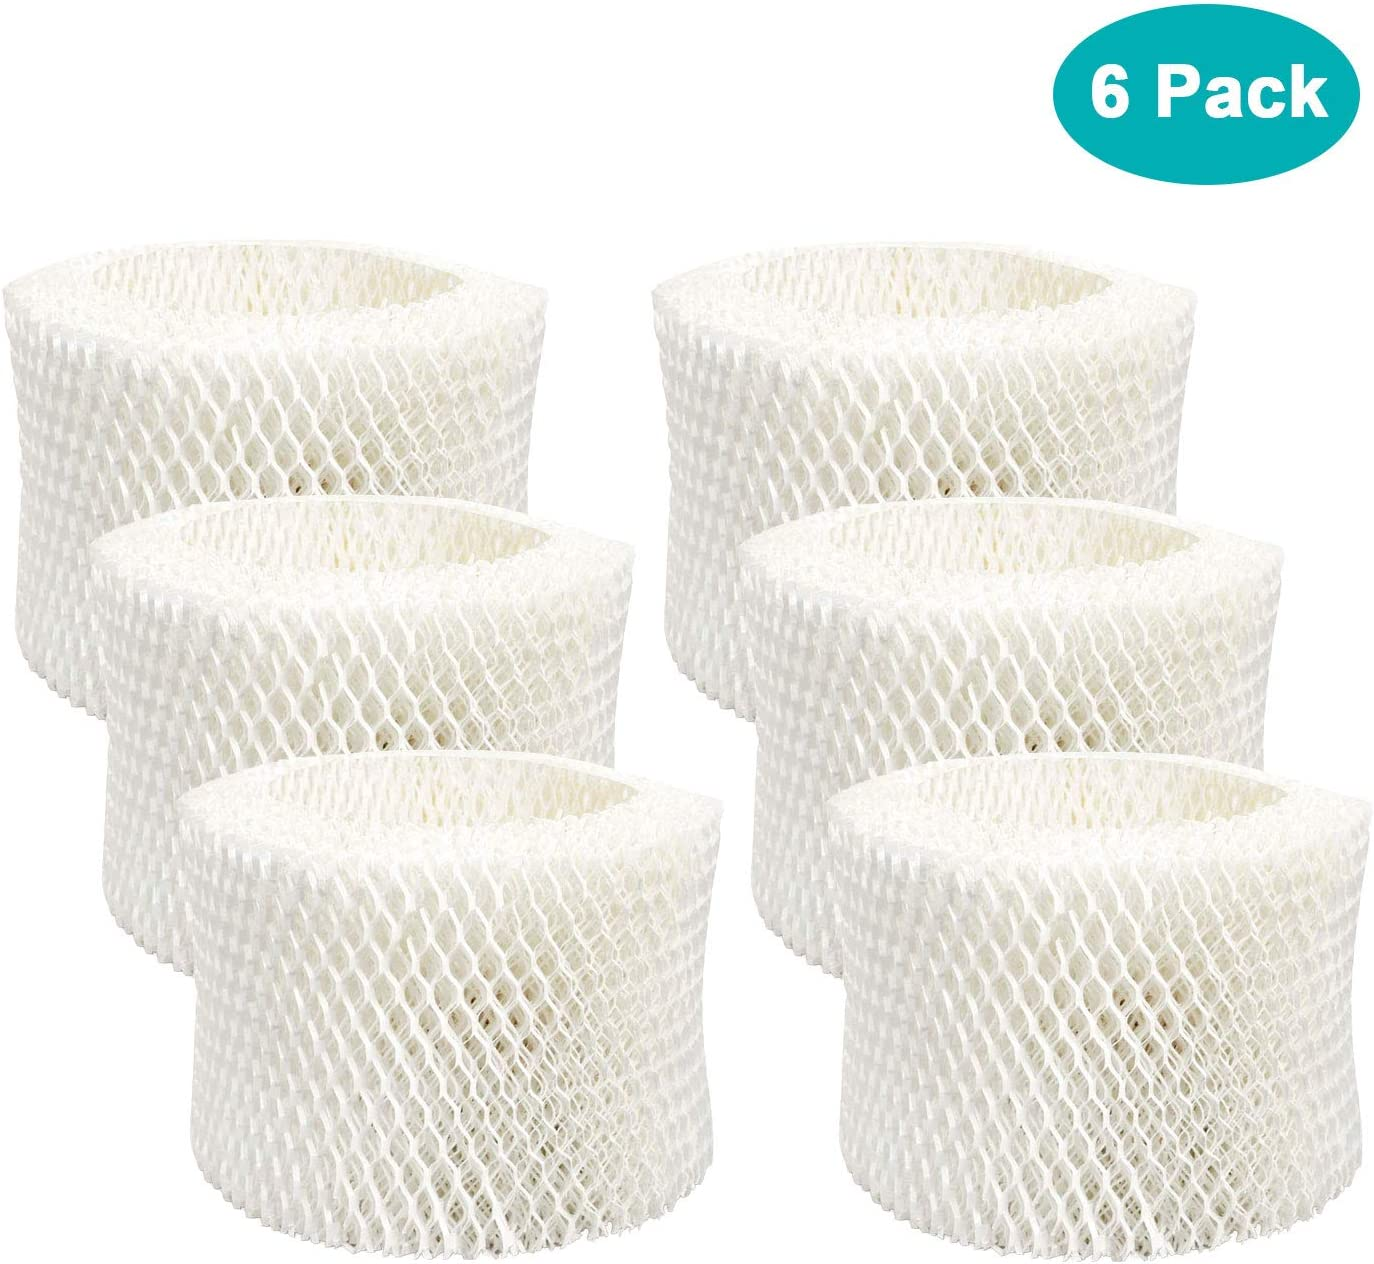 Lemige 6 Pack HAC-504 Humidifier Filters for Honeywell Humidifier HAC-504, HAC-504AW, HAC504V1, HCM350, HCM-350W, HCM-300T, HCM-315T, HCM-600, HCM-710, Replacement Filter A,